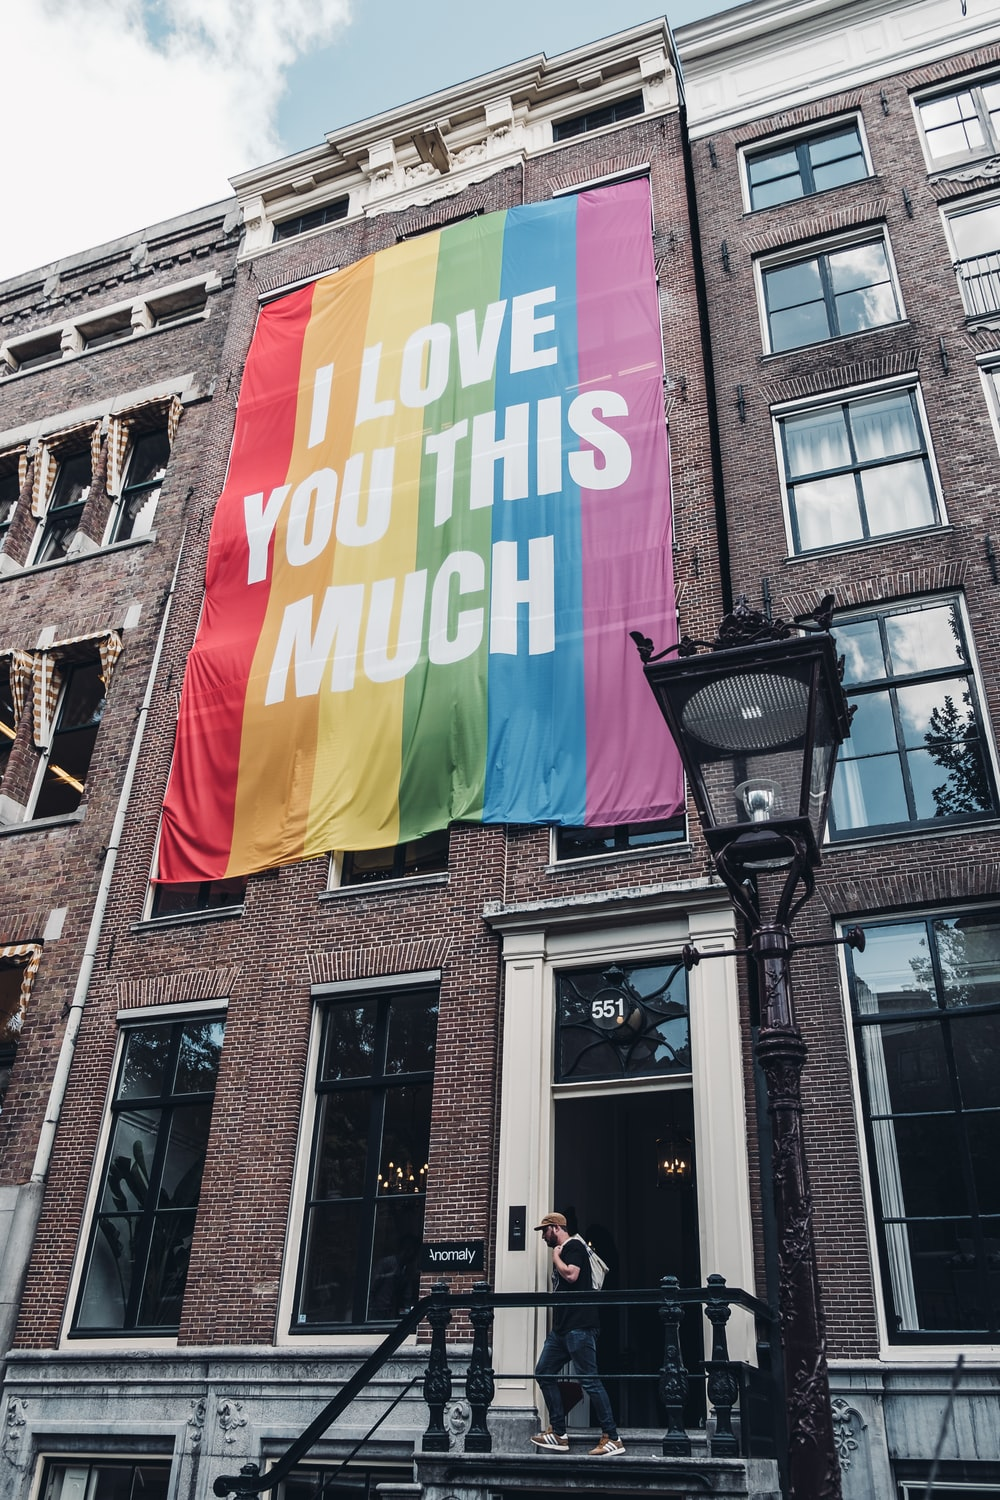 I love you this mush poster hanged on brown painted building